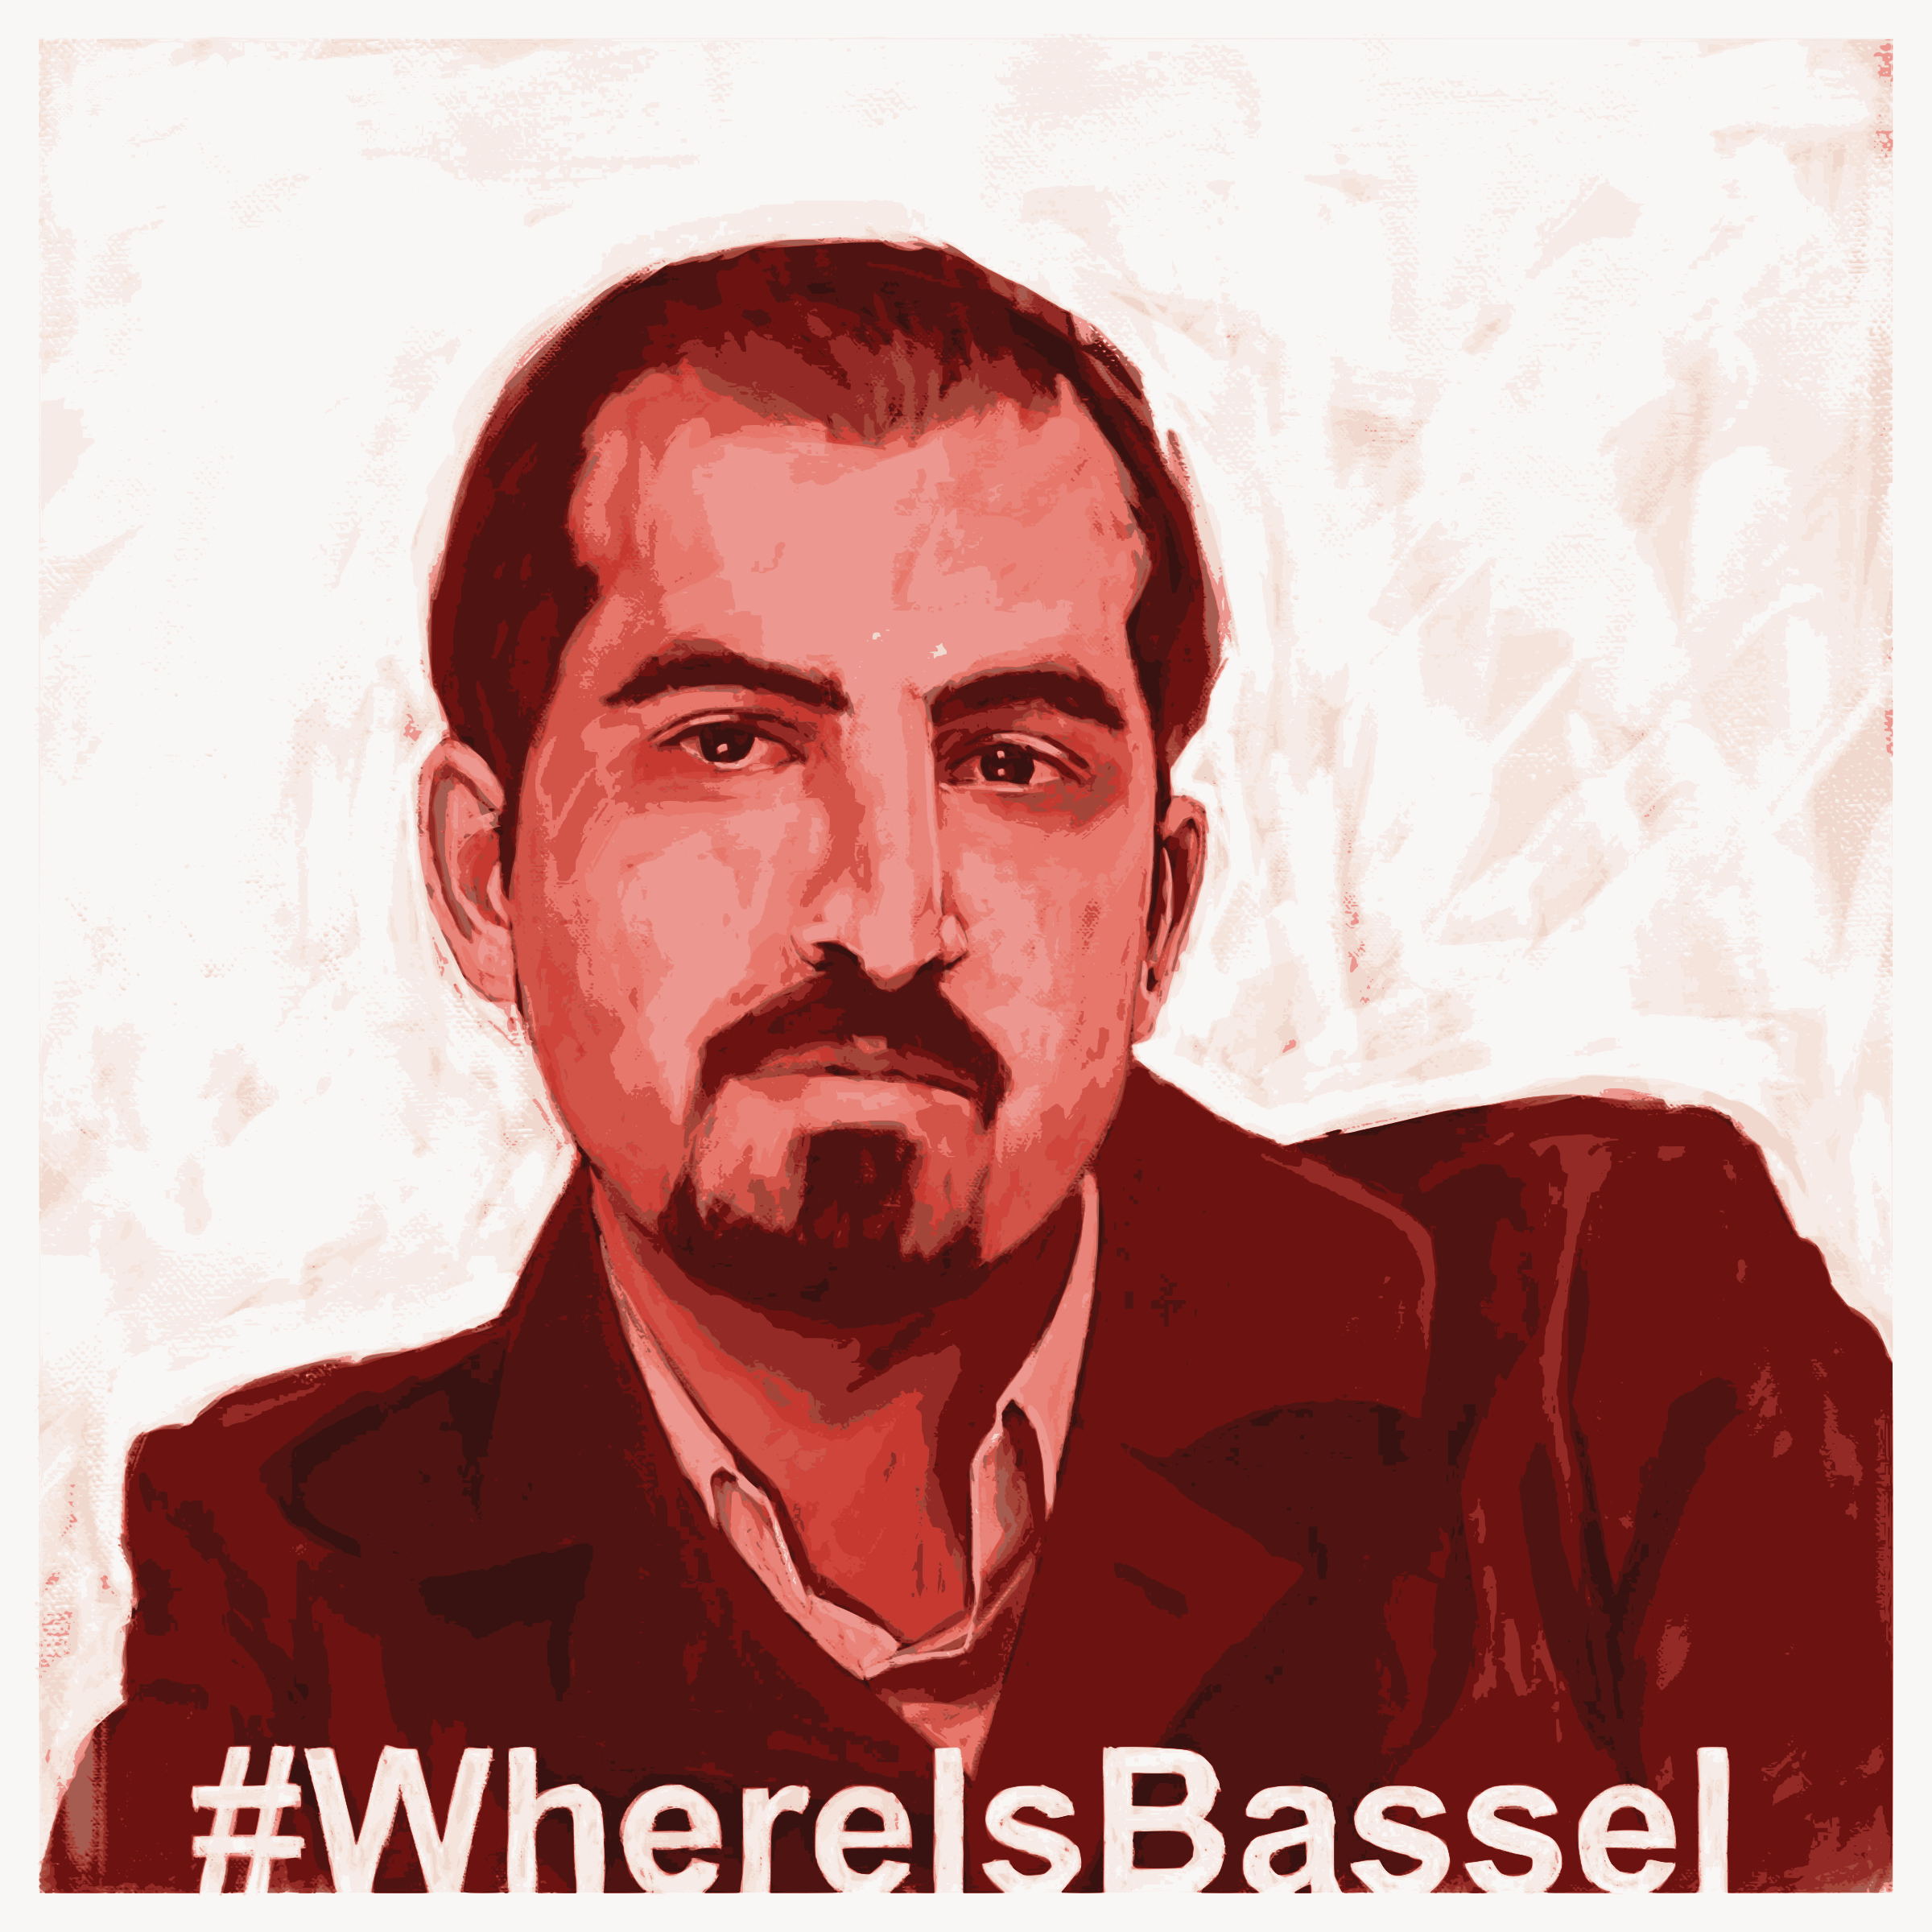 WhereIsBassel Painting (16 colors) by Anonymous